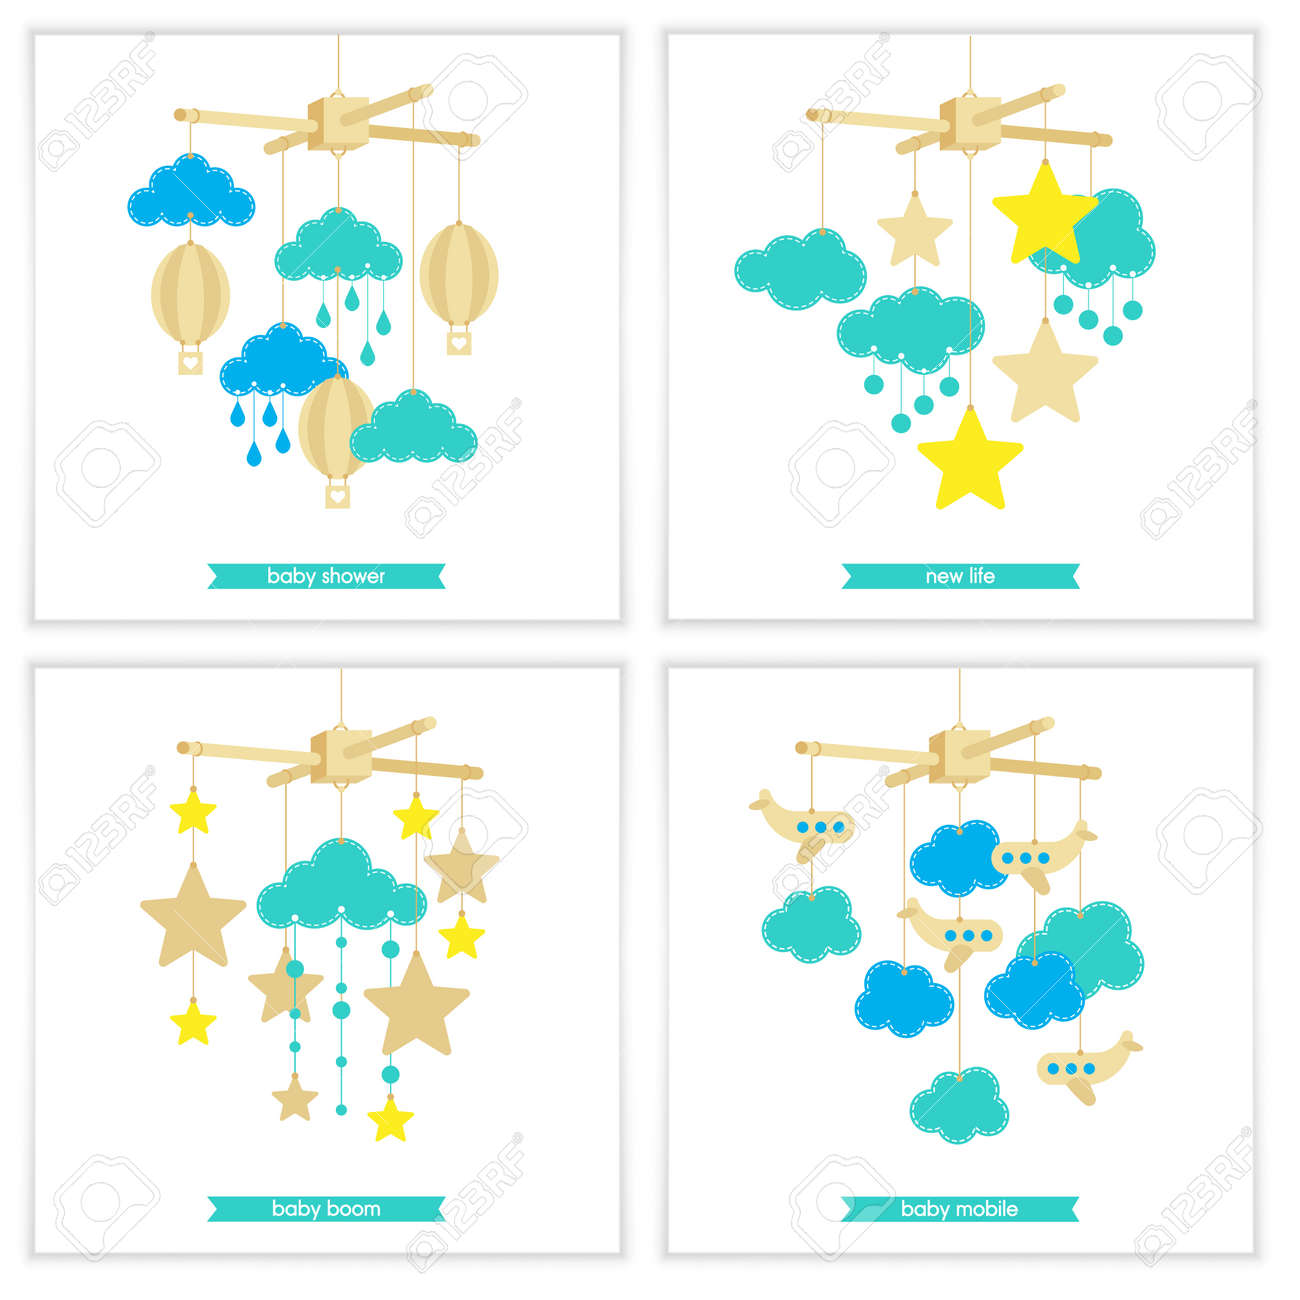 newborn card illustration of baby mobile stars clouds airplanes